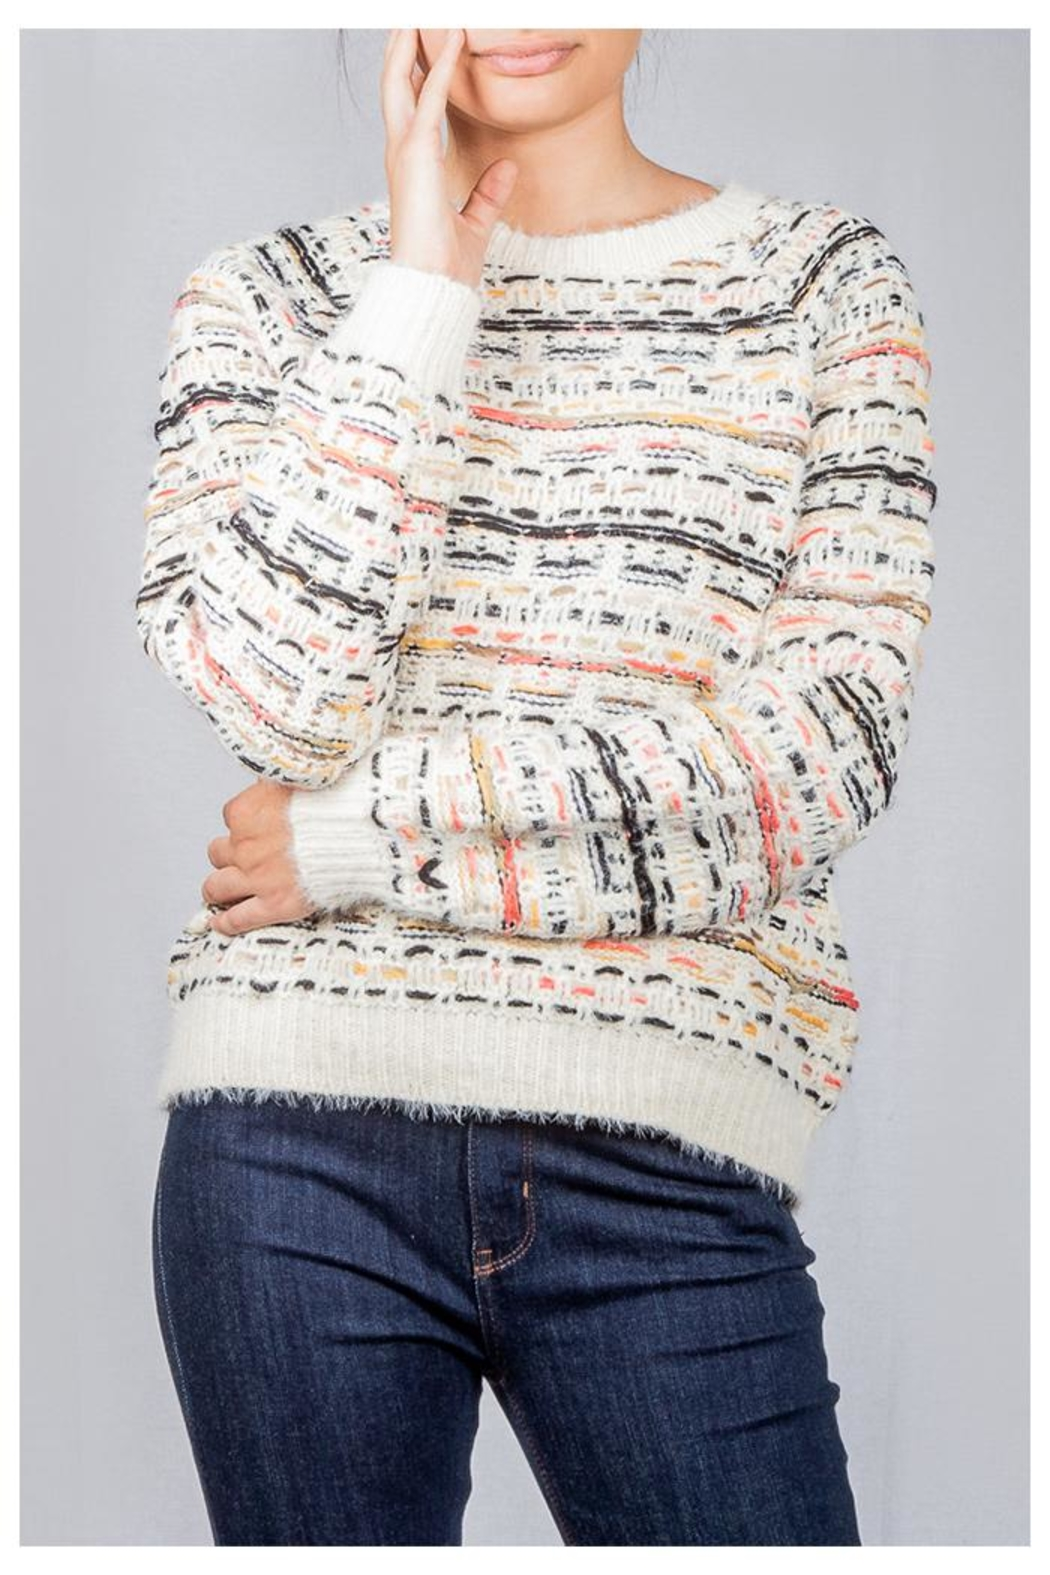 Lumiere Colorful Weave Sweater - Front Full Image